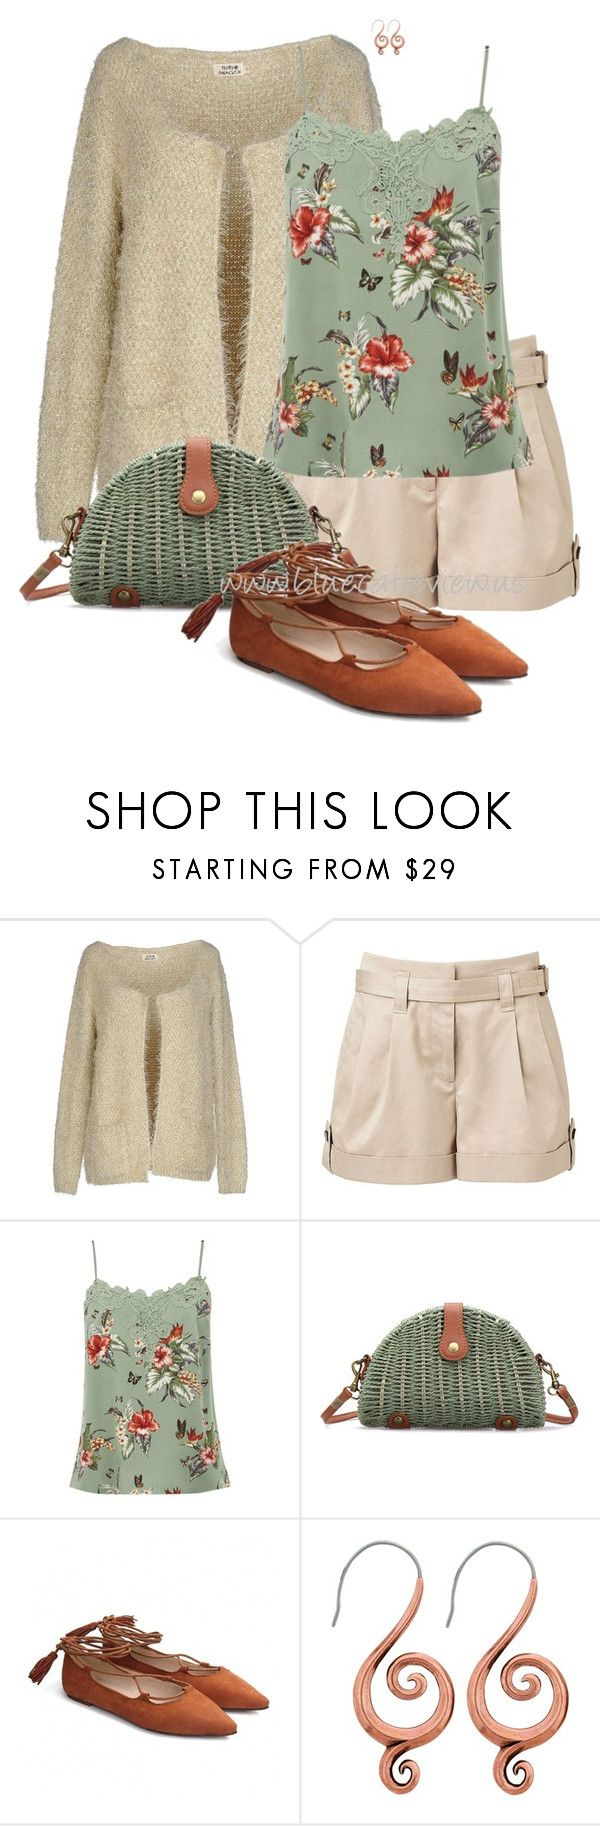 """""""Cardis & Shorts 2"""" by bluecatreview13 ❤ liked on Polyvore featuring Molly Bracken, Witchery, Oasis, shorts, cardi, bluecatreview and over50styling"""